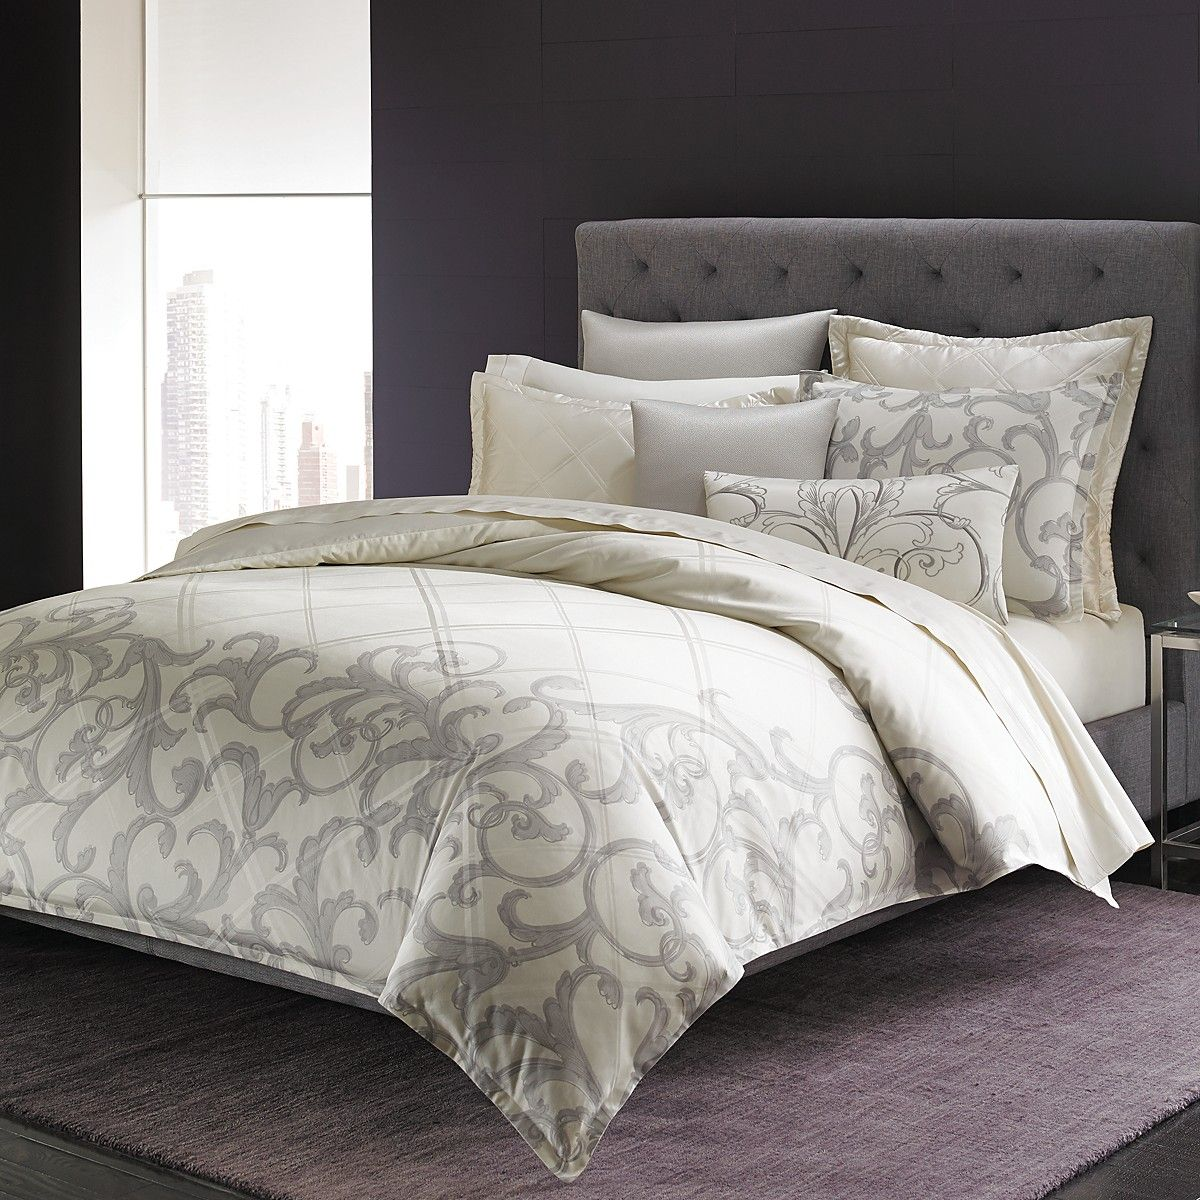 ralph sheets comforters king covers bedding best luxury camelia cool bath paisle navy lauren home villa sets cute bloomingdales duvet collections cover top scion comforter canada paisley